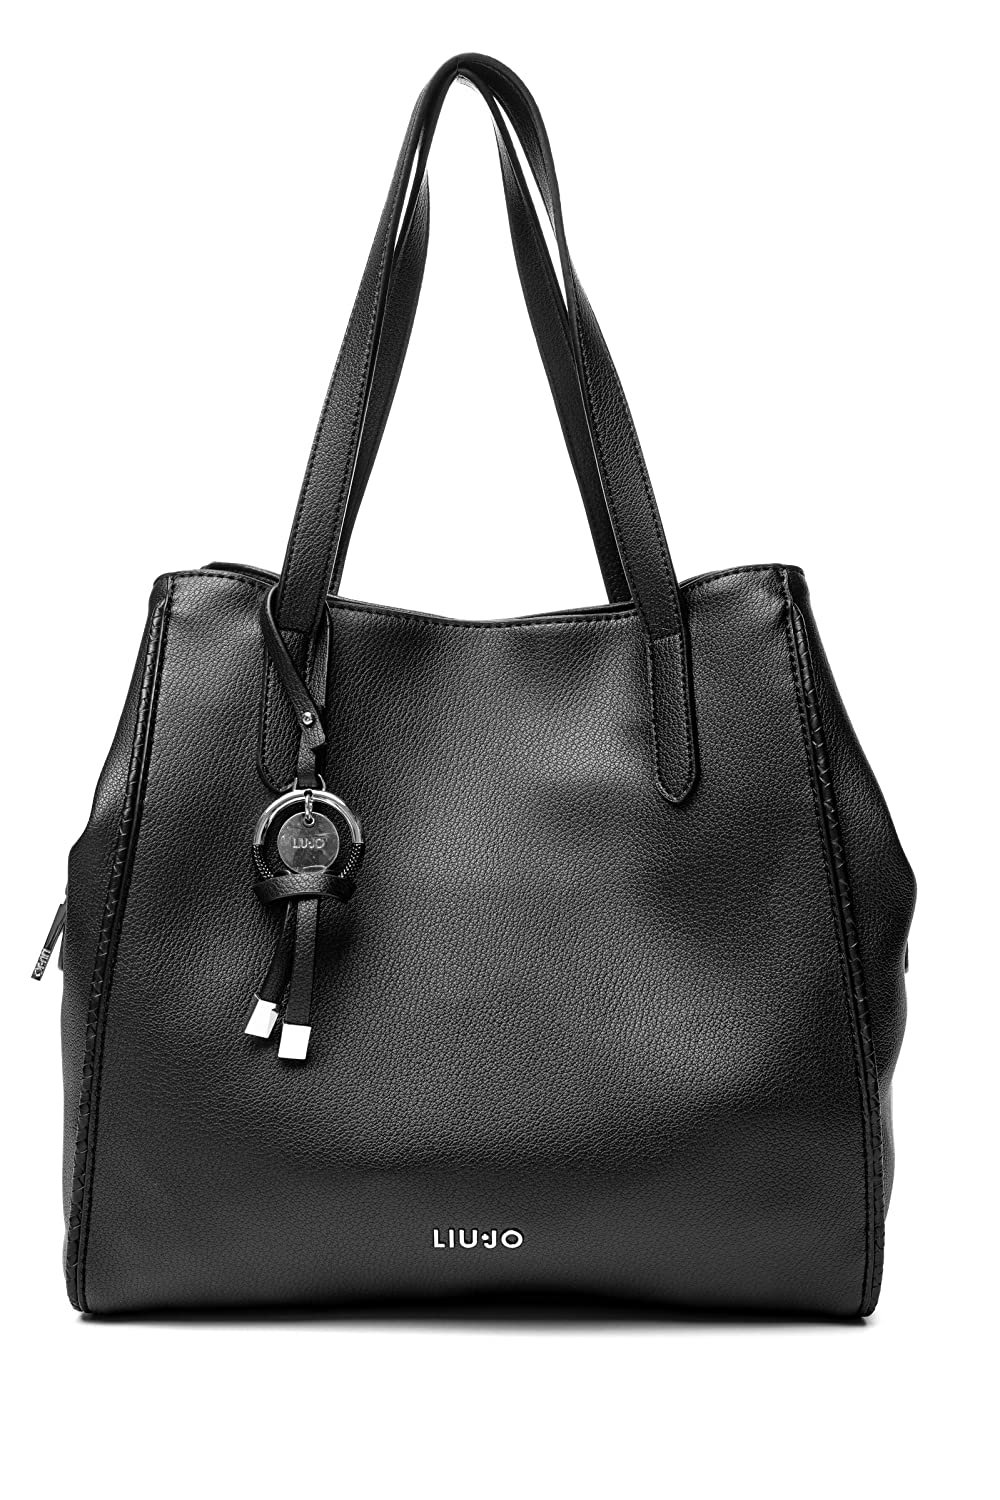 LIU JO Creativa Satchel M Nero: Amazon.it: Scarpe e borse